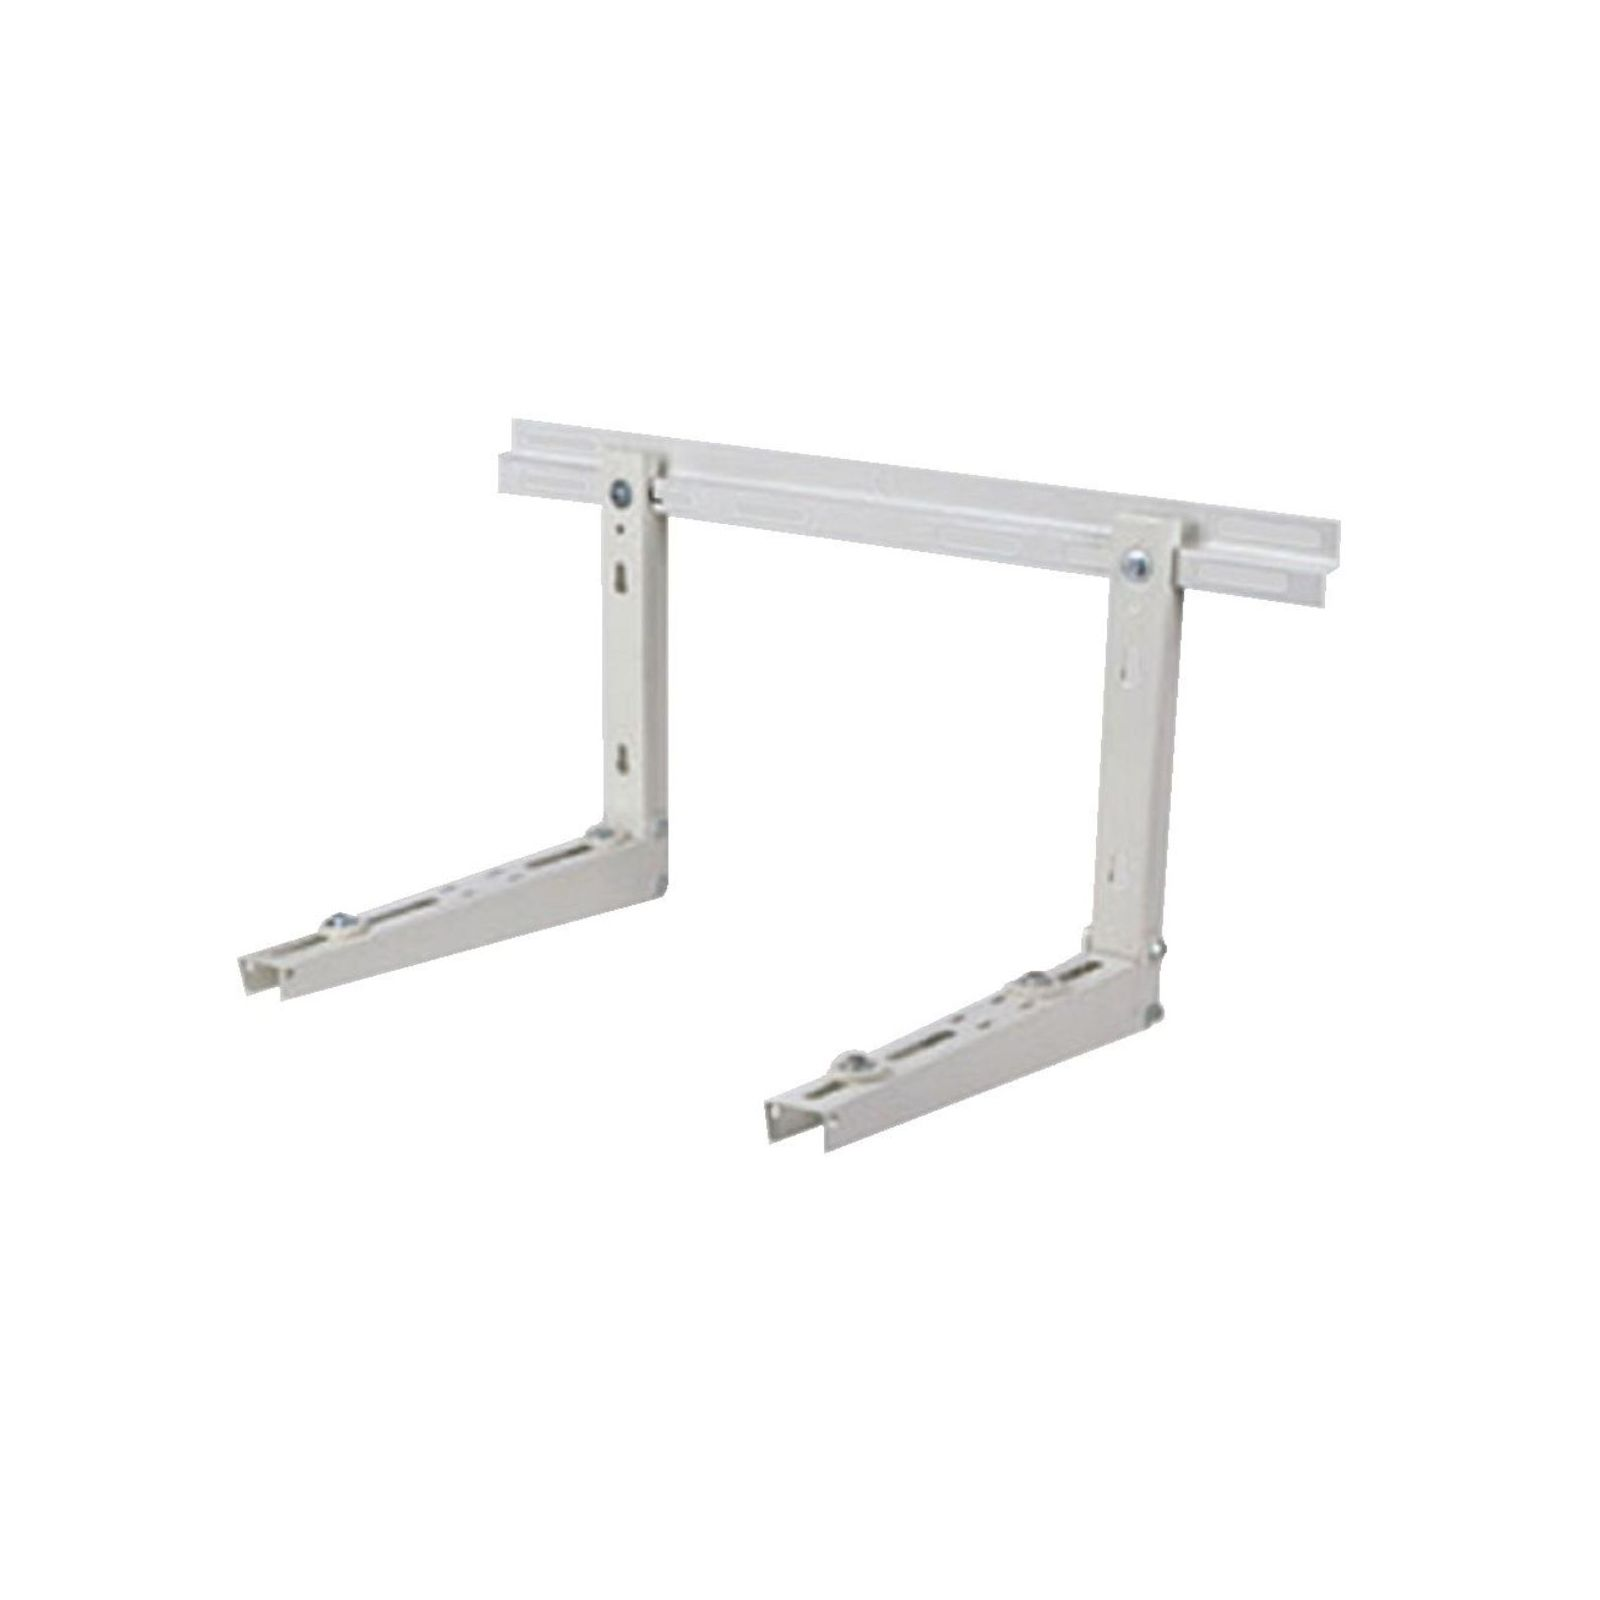 "DiversiTech 230-B2L - Hef-T-Bracket (Type 2), Large, 21"", 220 Pounds, Support For Condensing Units"